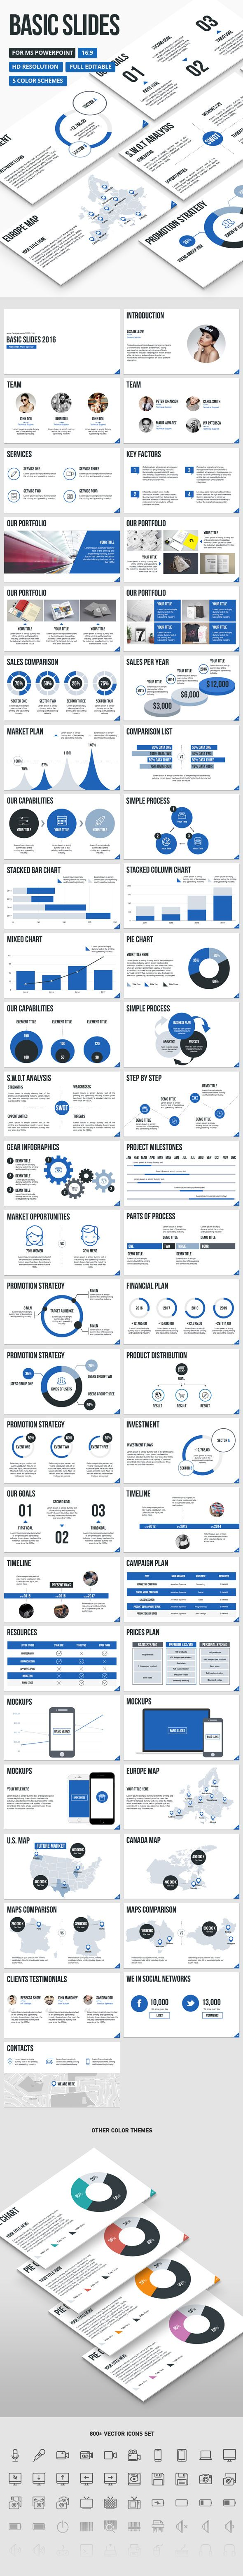 72 best keynote & powerpoint presentation templates images on, Modern powerpoint